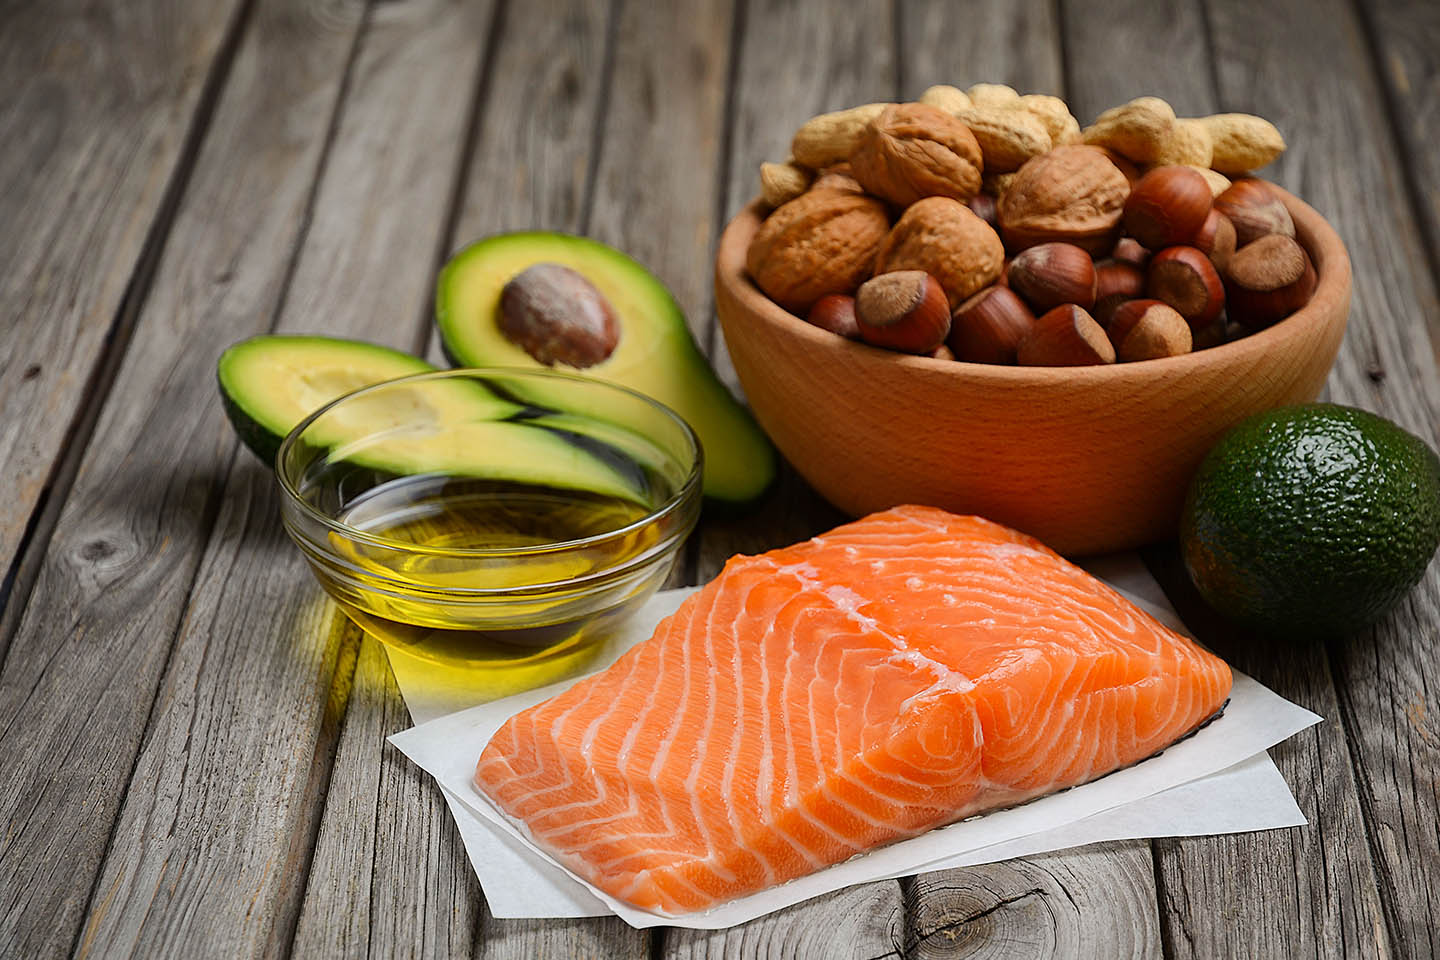 A piece of salmon, avocado, nuts, and a bowl of oil